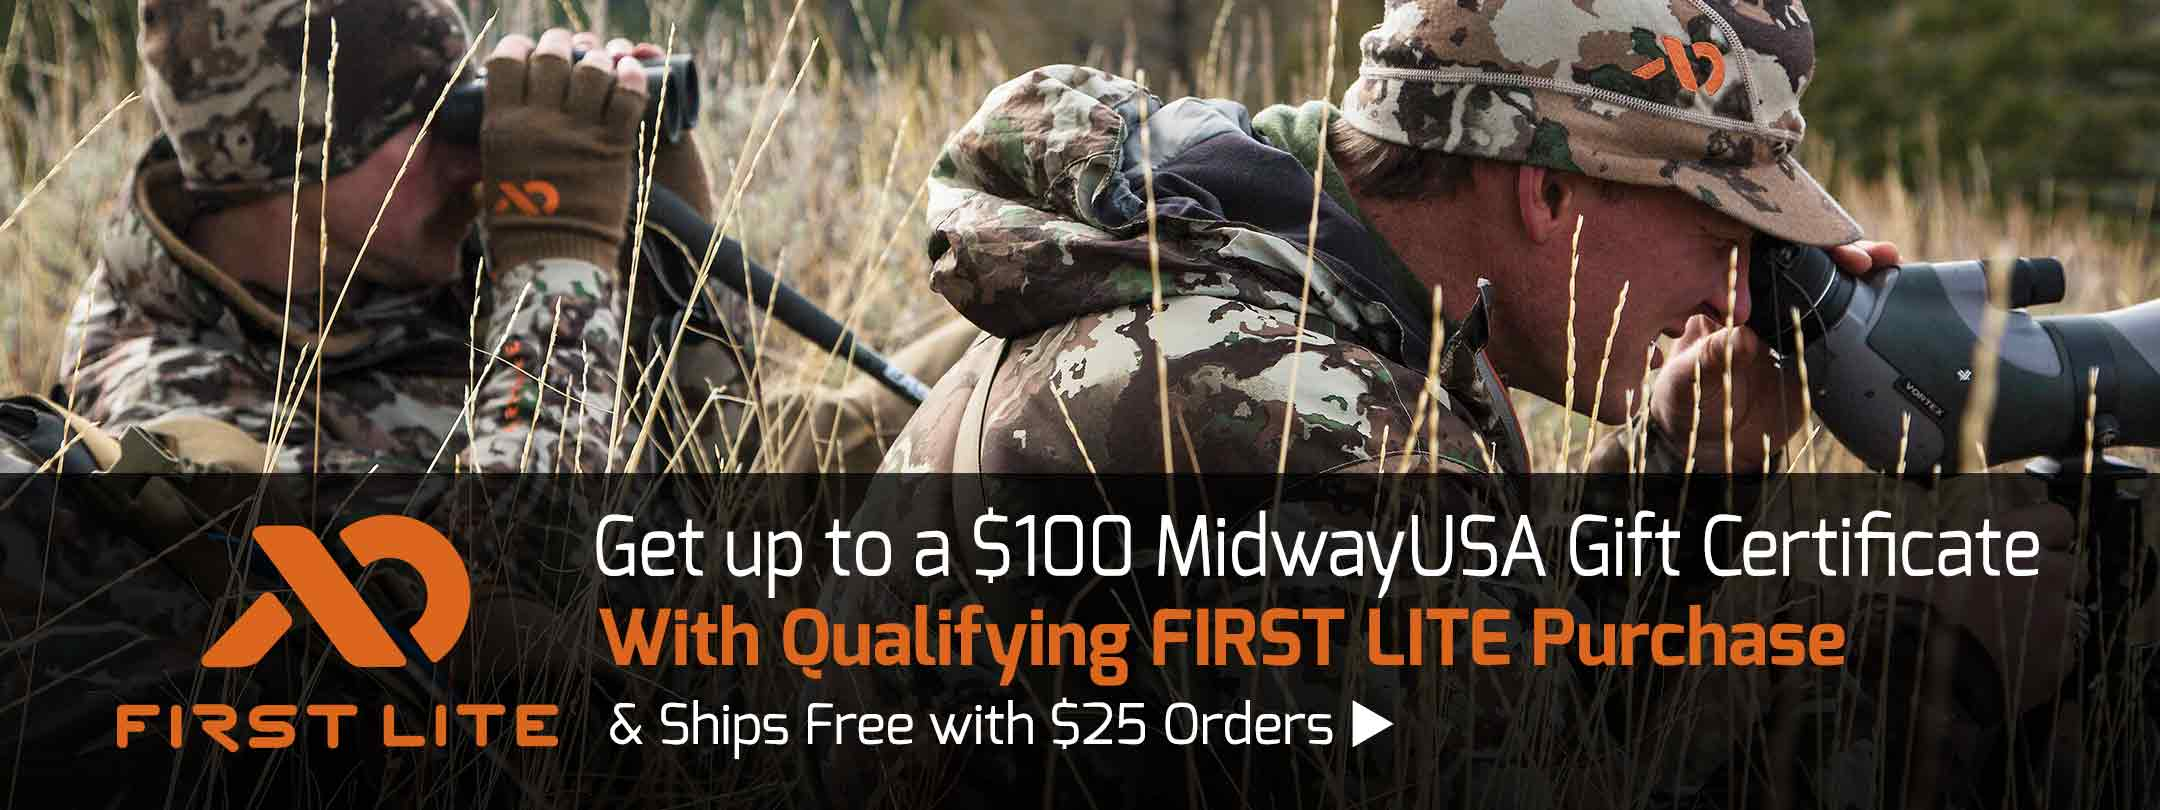 Up to $100 MidwayUSA Gift Certificate with Qualifying First Lite Purchase